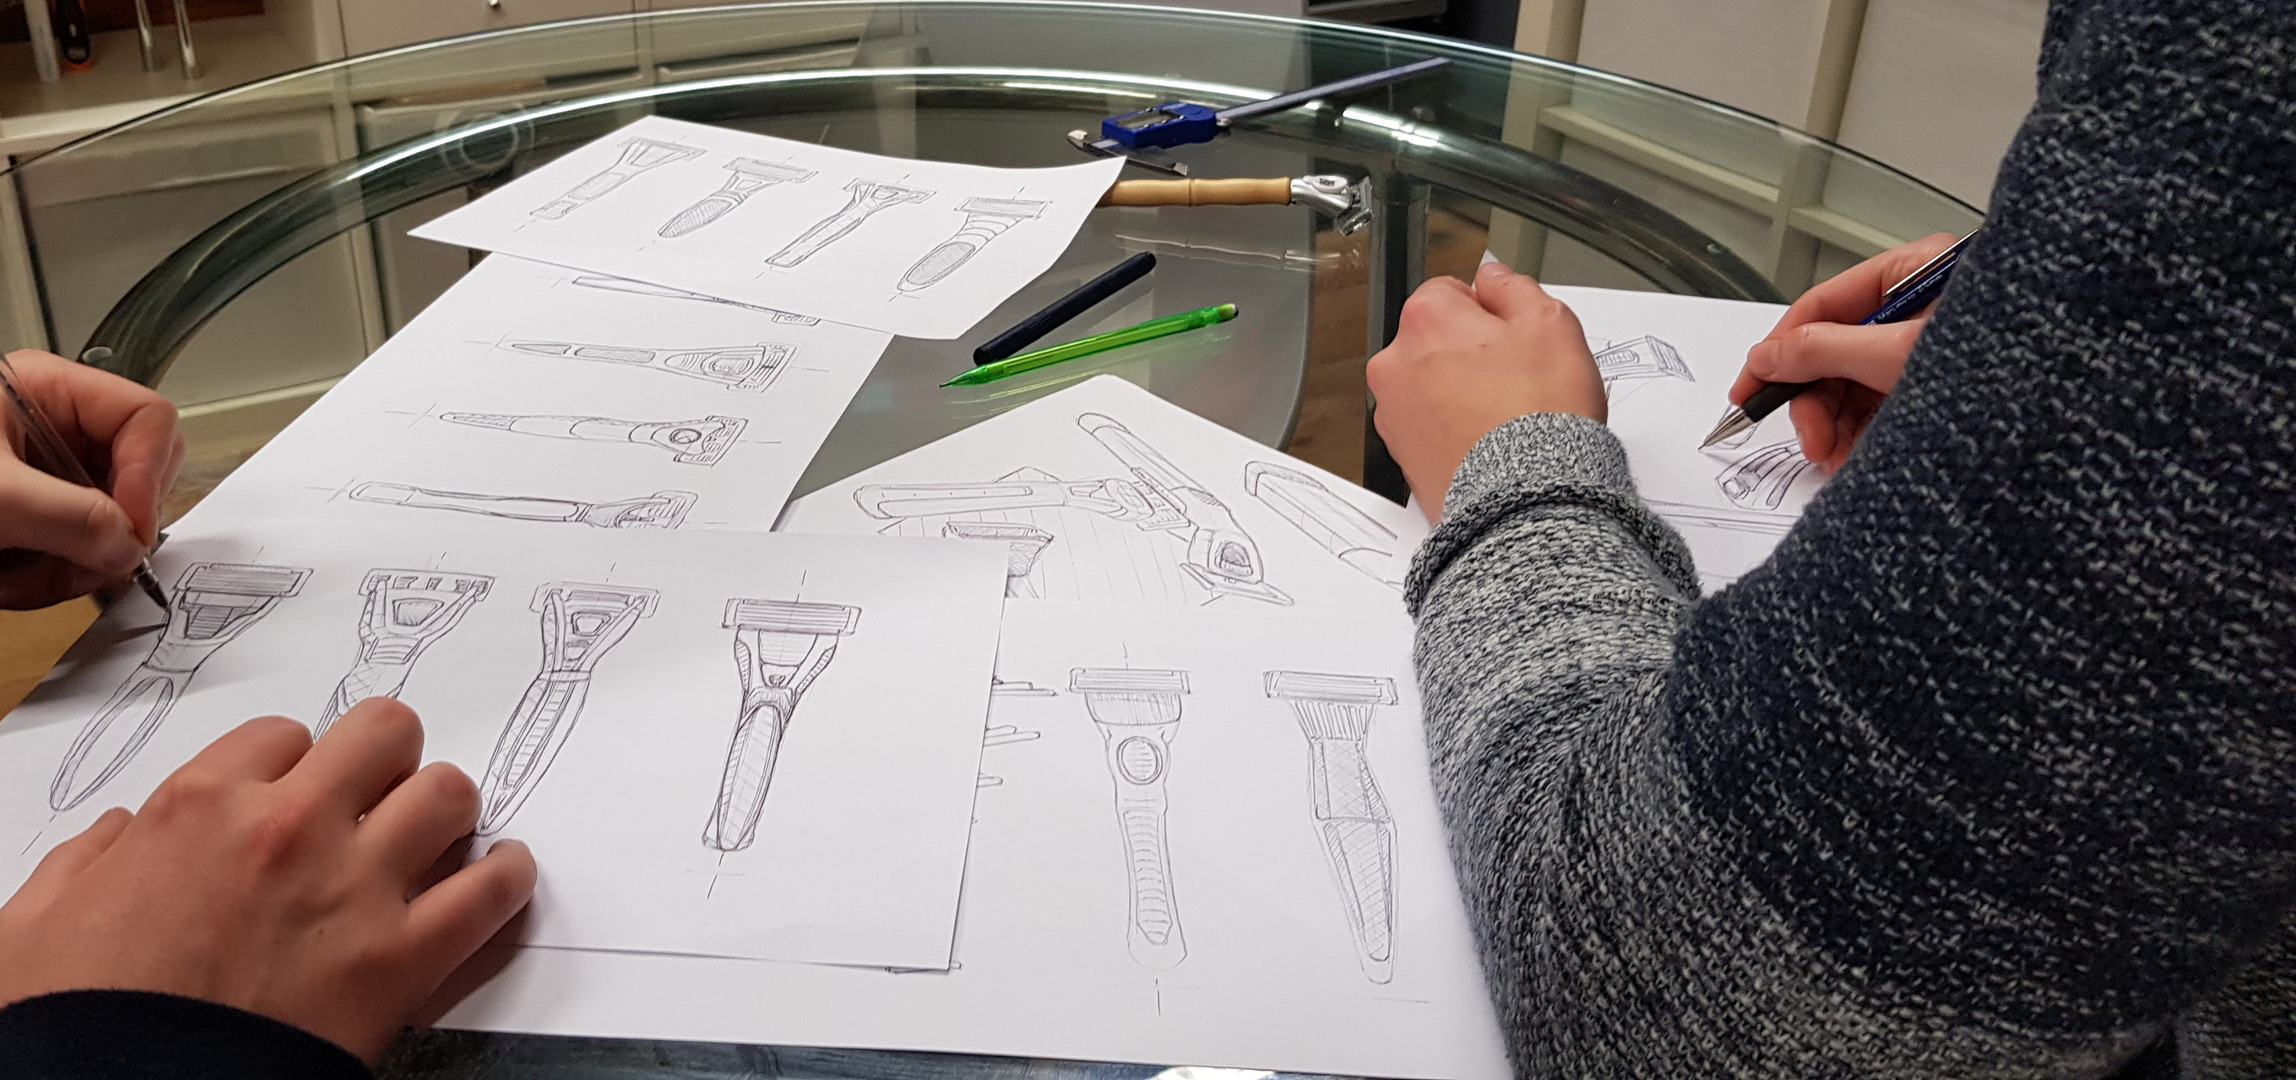 Sketching razor handle designs